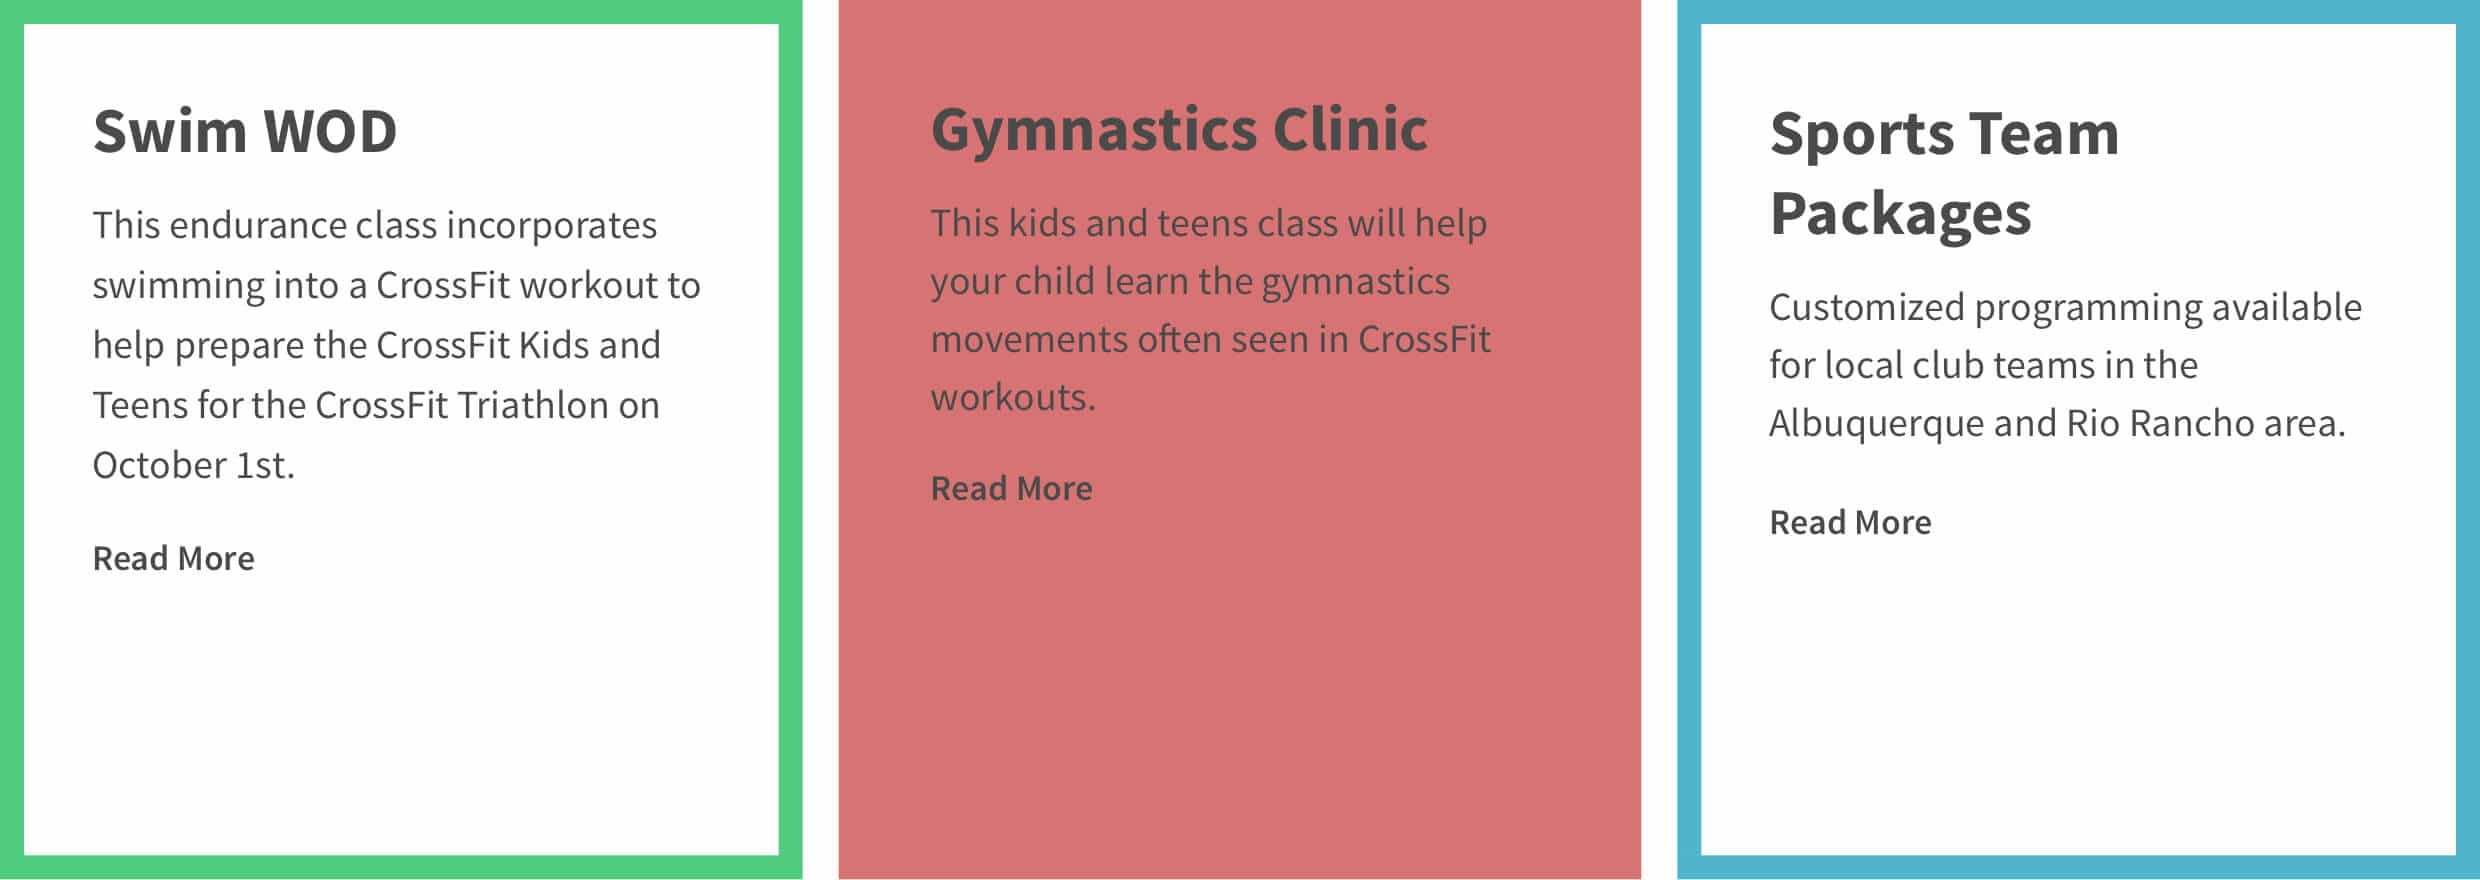 Design element used in the custom WordPress website design for Firehawks CrossFit Kids/Teens